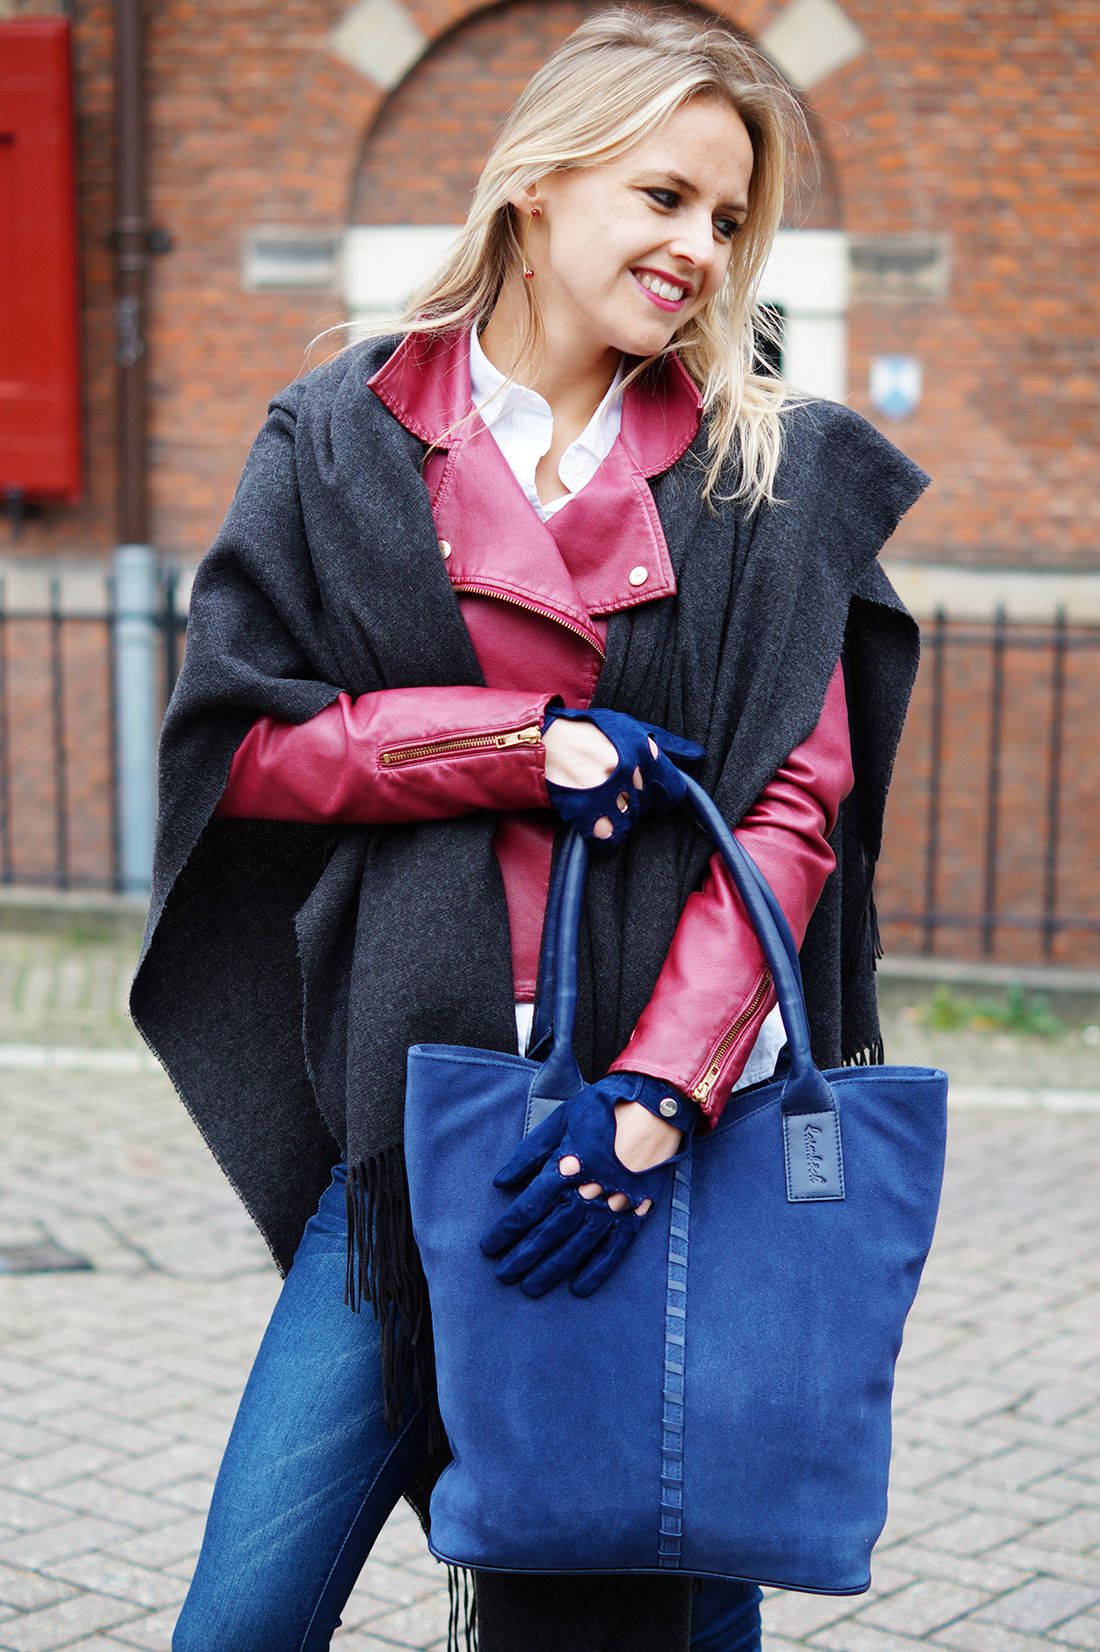 Bag-at-You---Fashion-blog---Casual-outfit---Laimbock-blue-bag-and-gloves